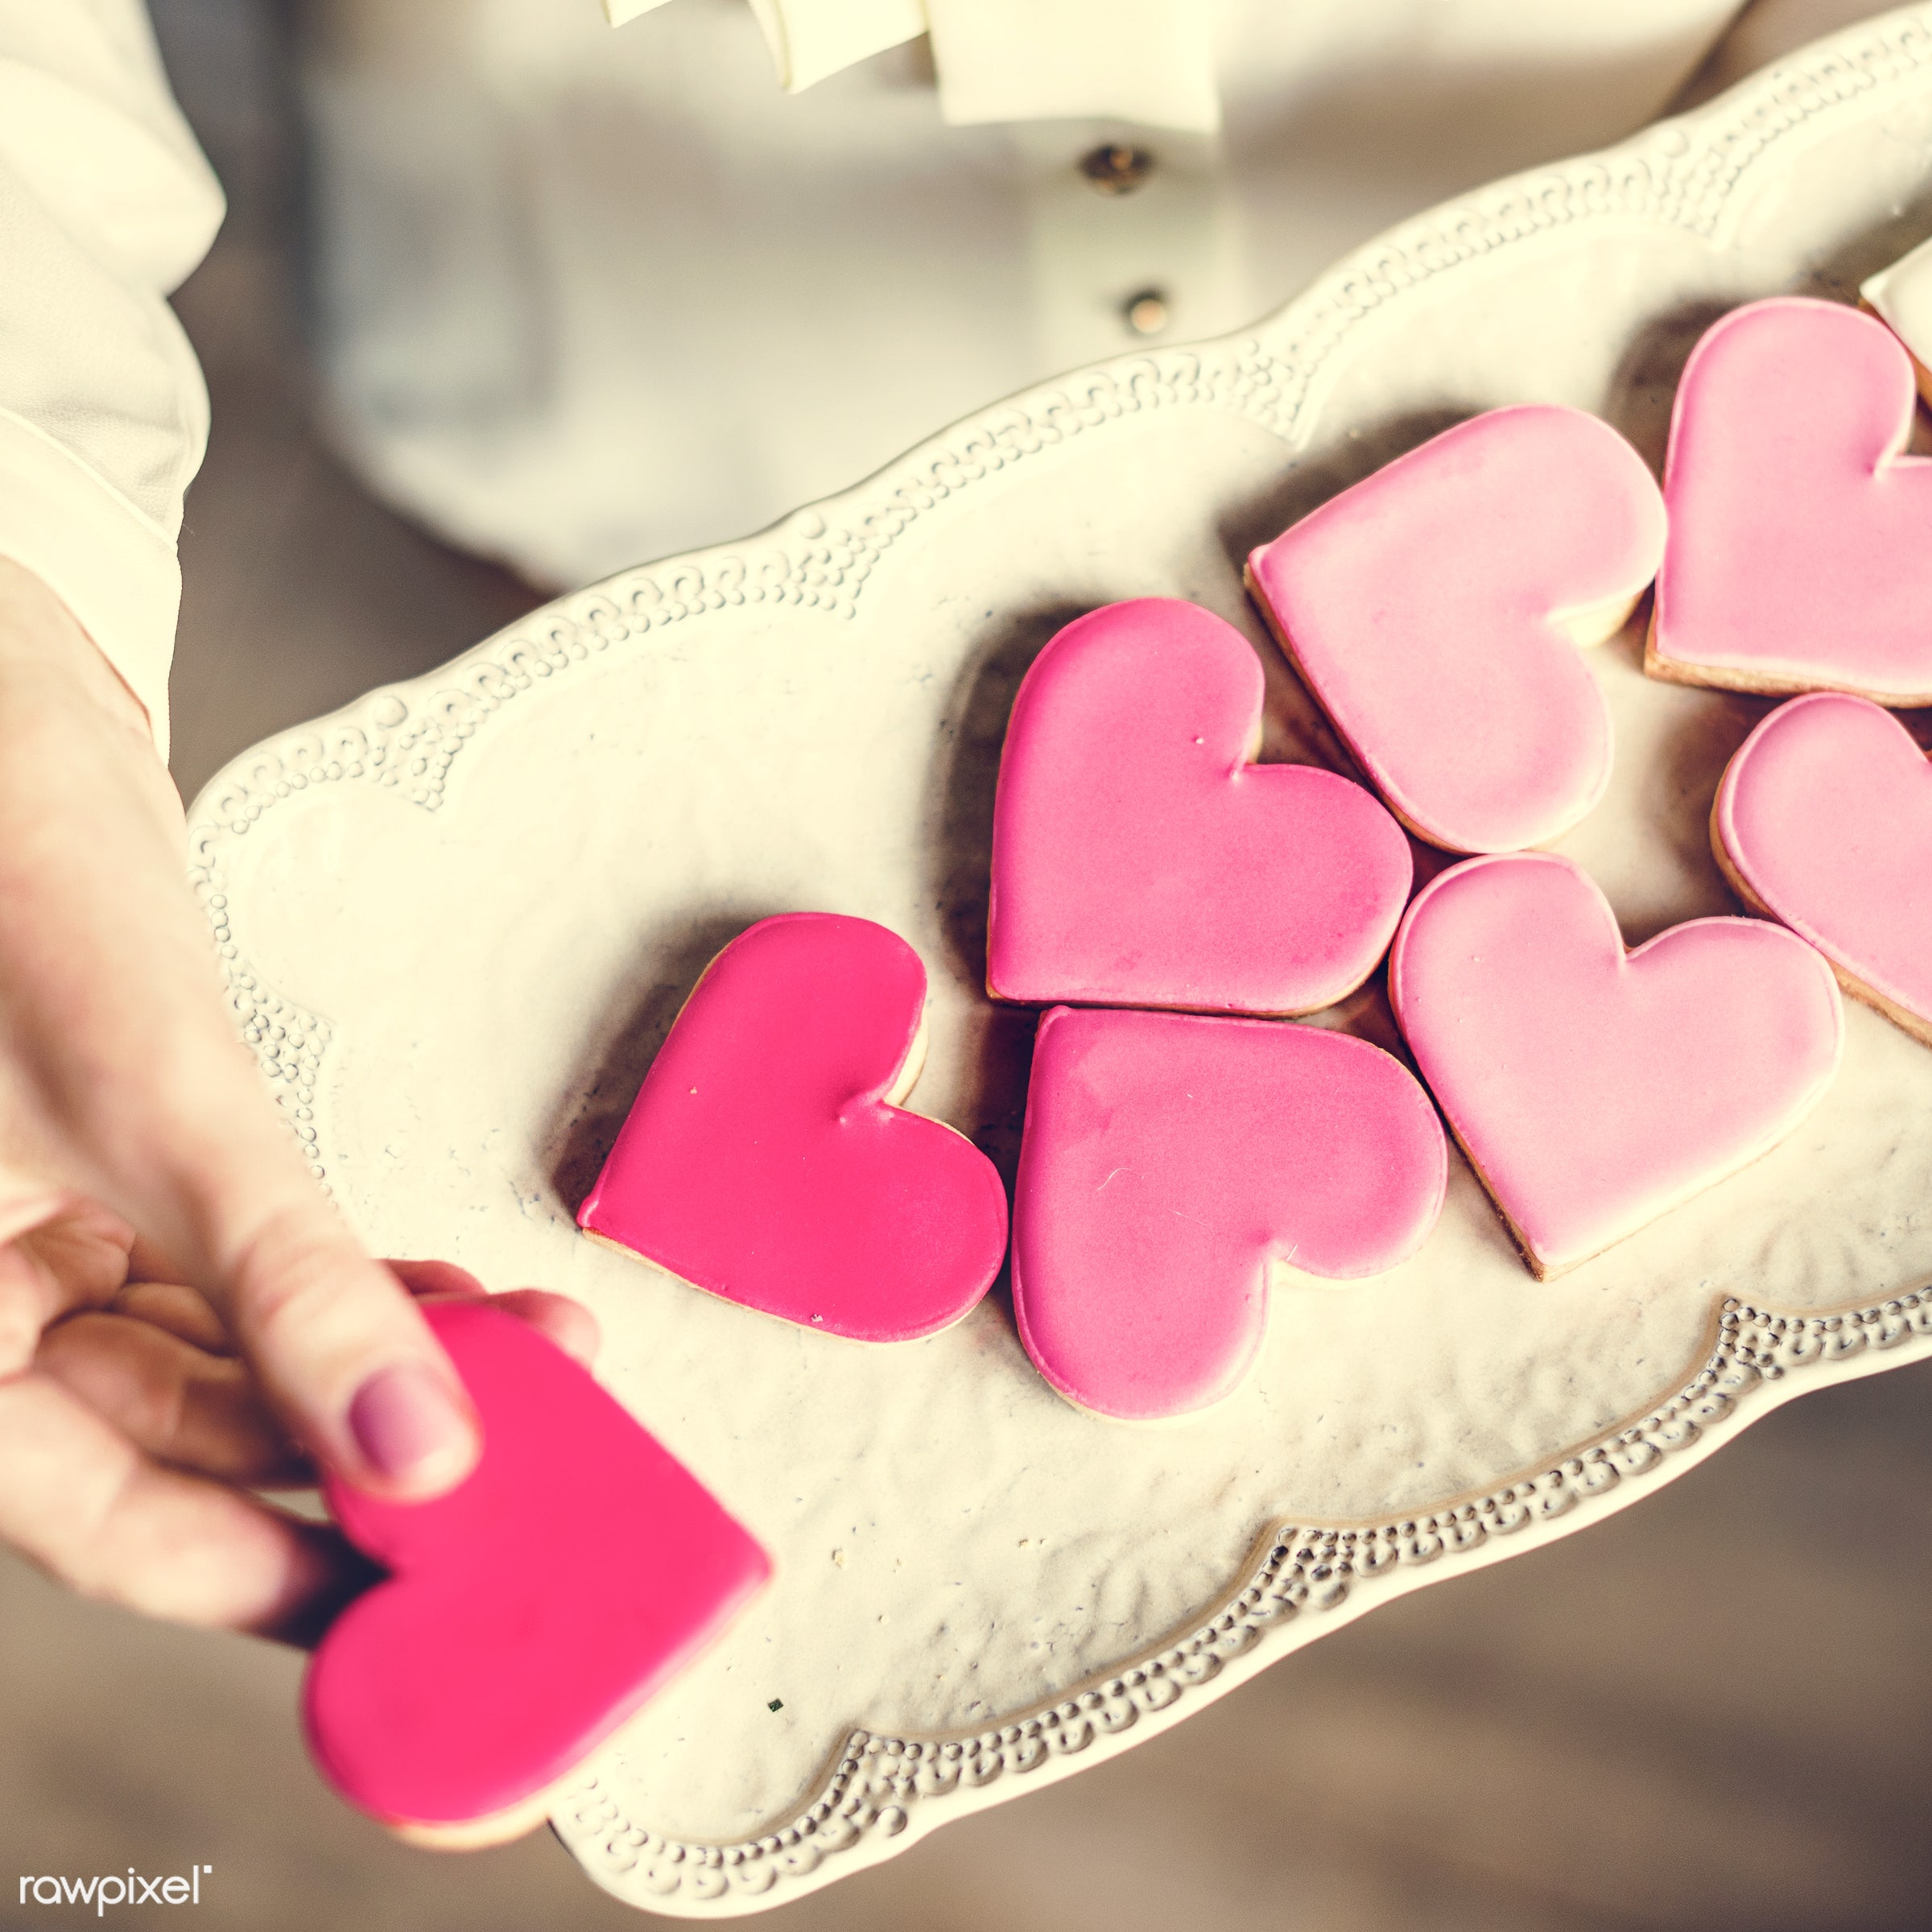 expression, dish, person, holding, smitten, people, love, bakery, woman, pink, carry, dessert, heart, yearning, white, plate...